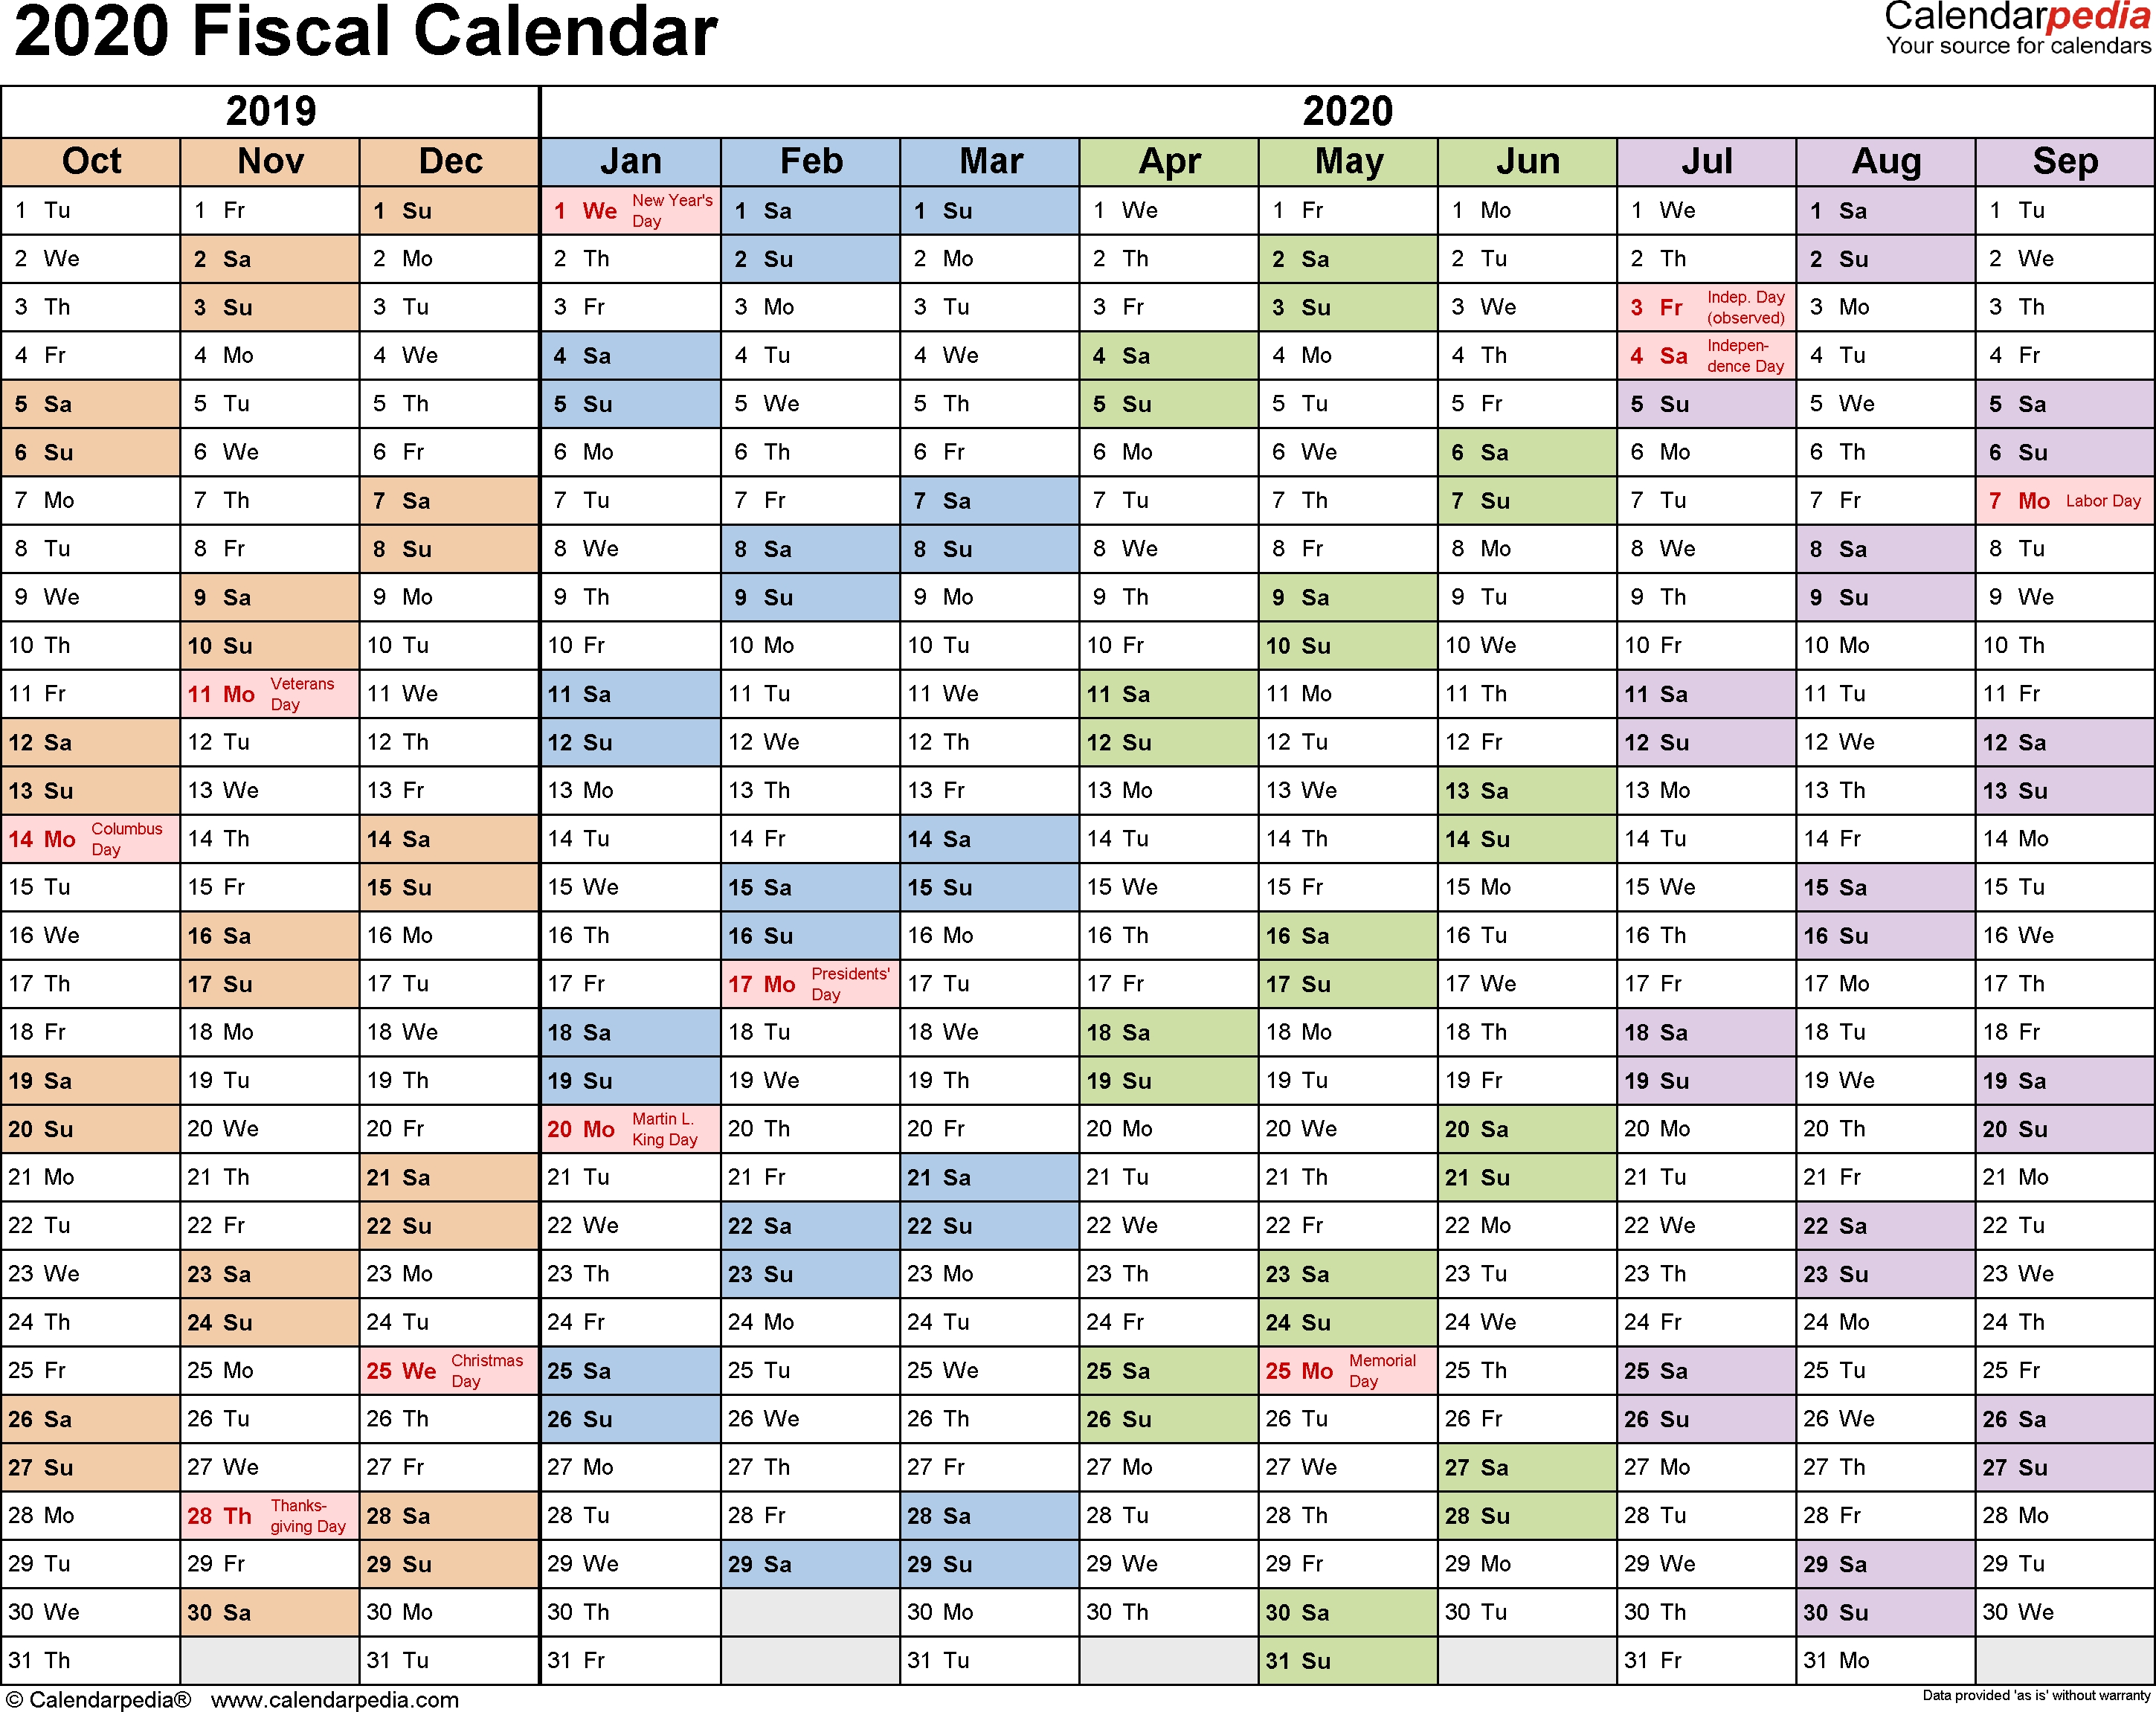 Fiscal Calendars 2020 As Free Printable Pdf Templates  Dod Julian Date Calendar 2020